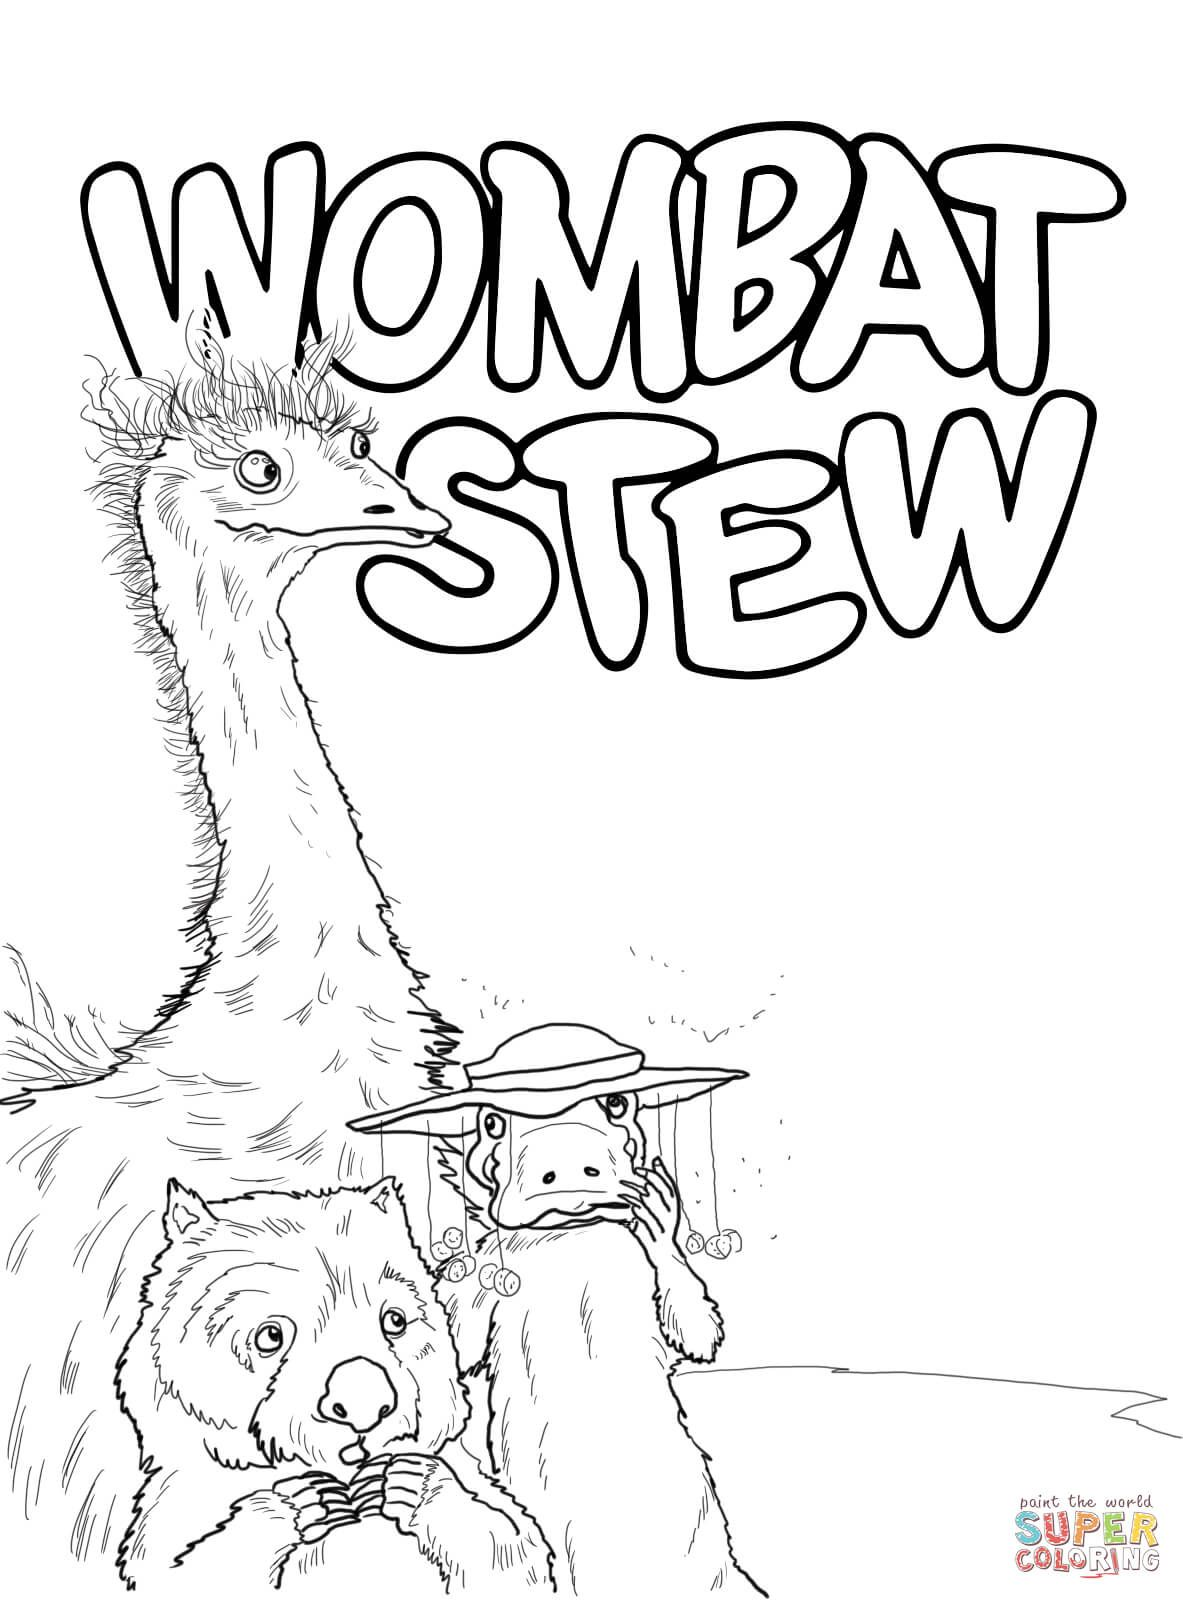 Emu Platypus And Wombat Coloring Page Free Printable Coloring